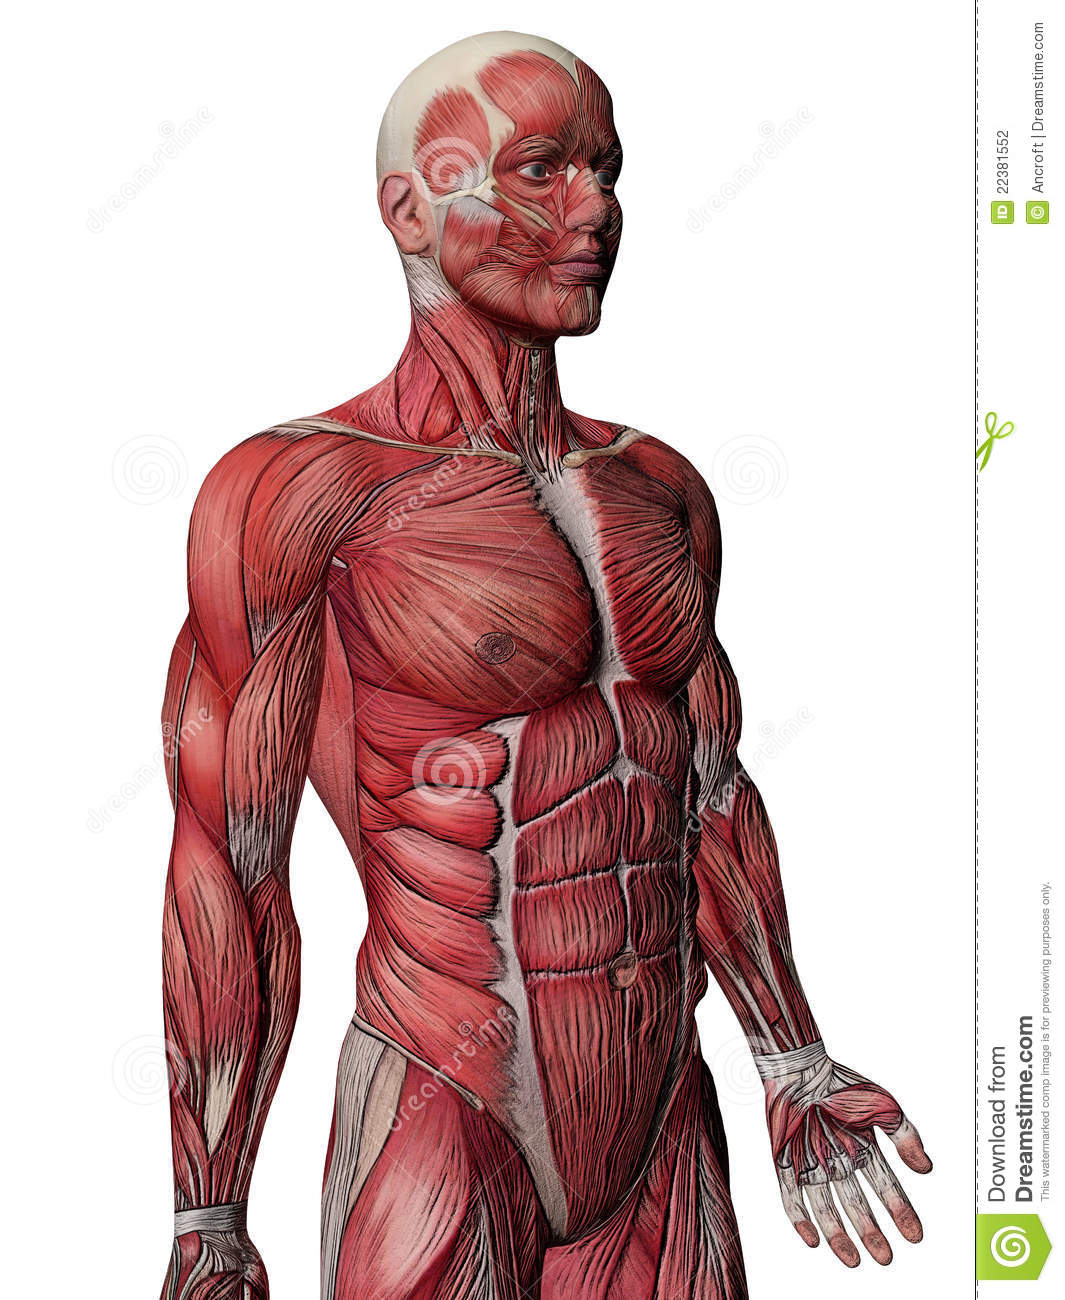 human muscle images – applecool, Muscles